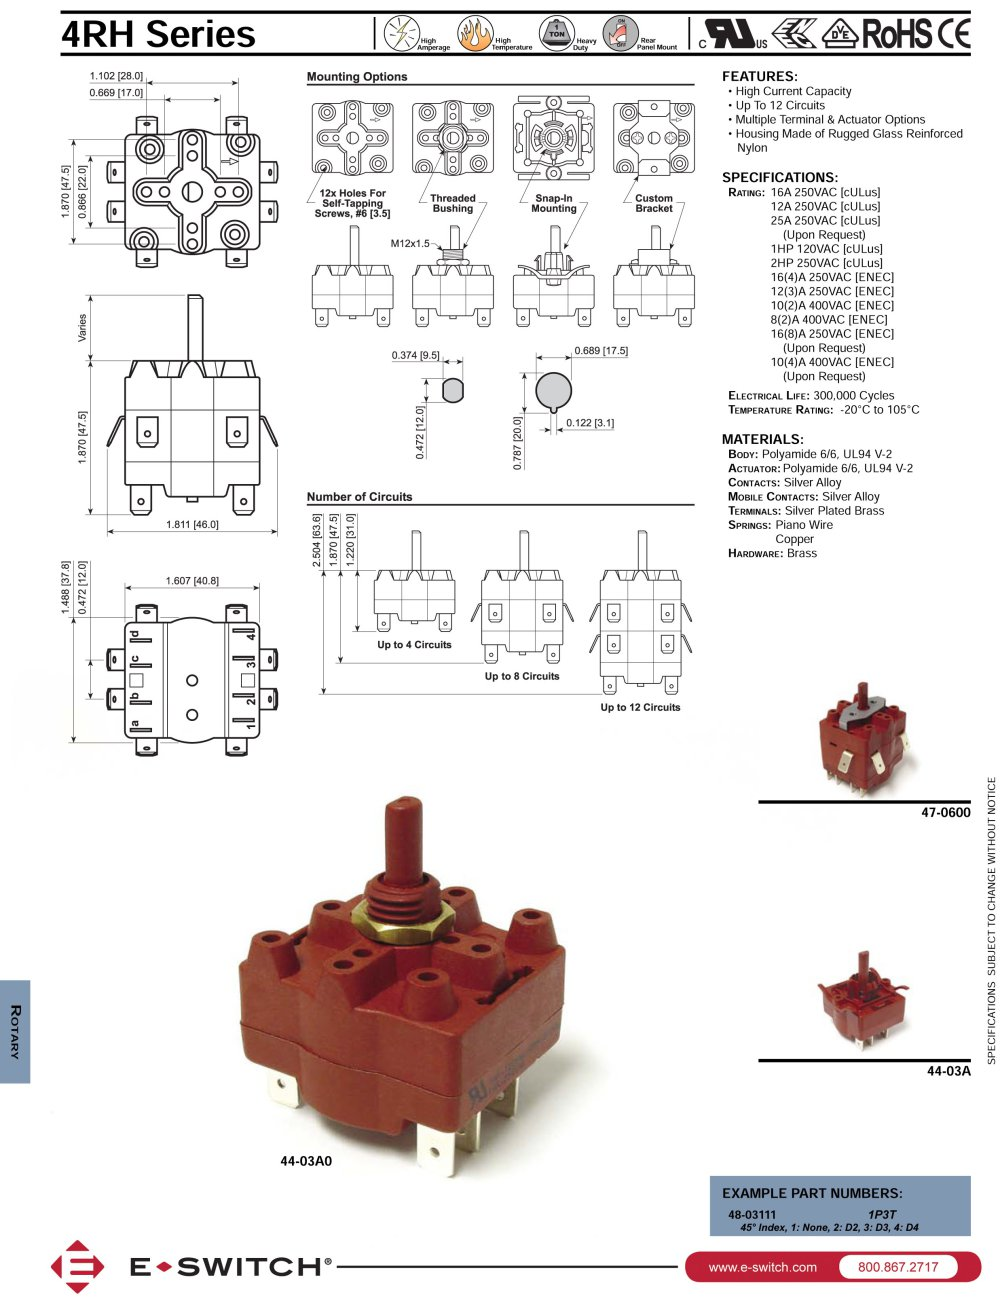 4rh Series High Current Capacity Rotary Switches E Switch Pdf Vandal Wiring Diagram 1 Pages